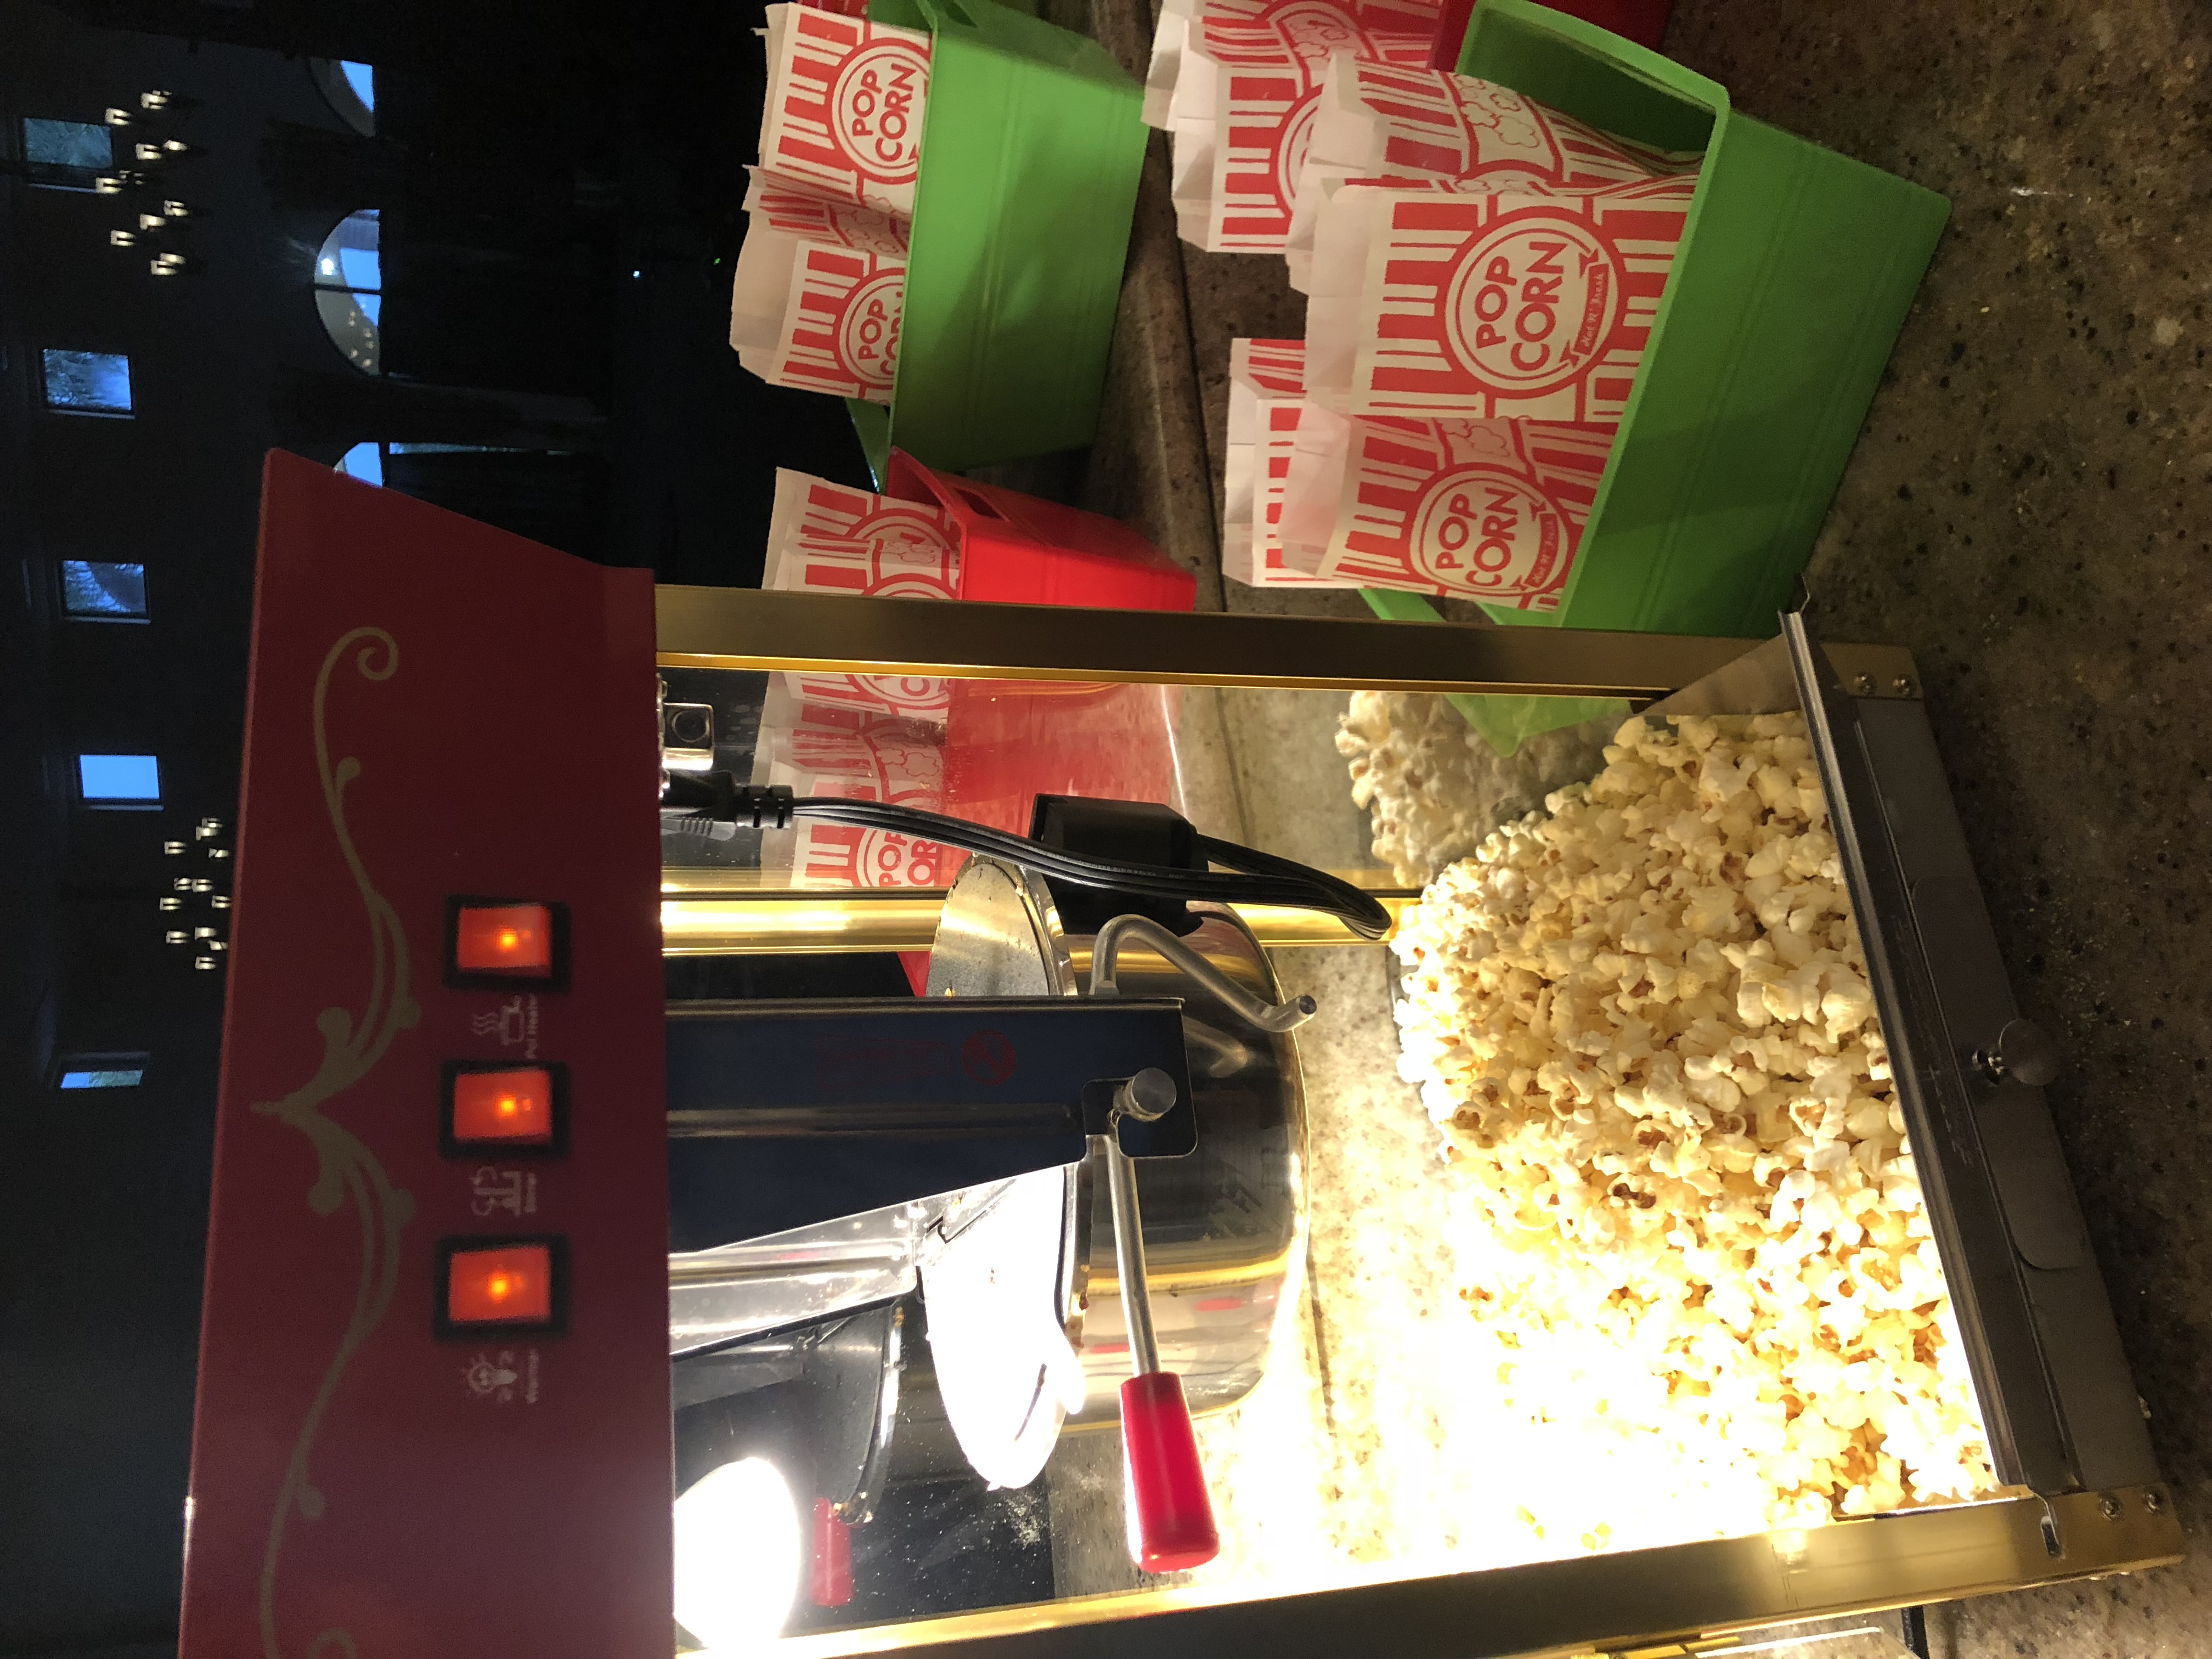 Large Popcorn Machine Rental - South Flo